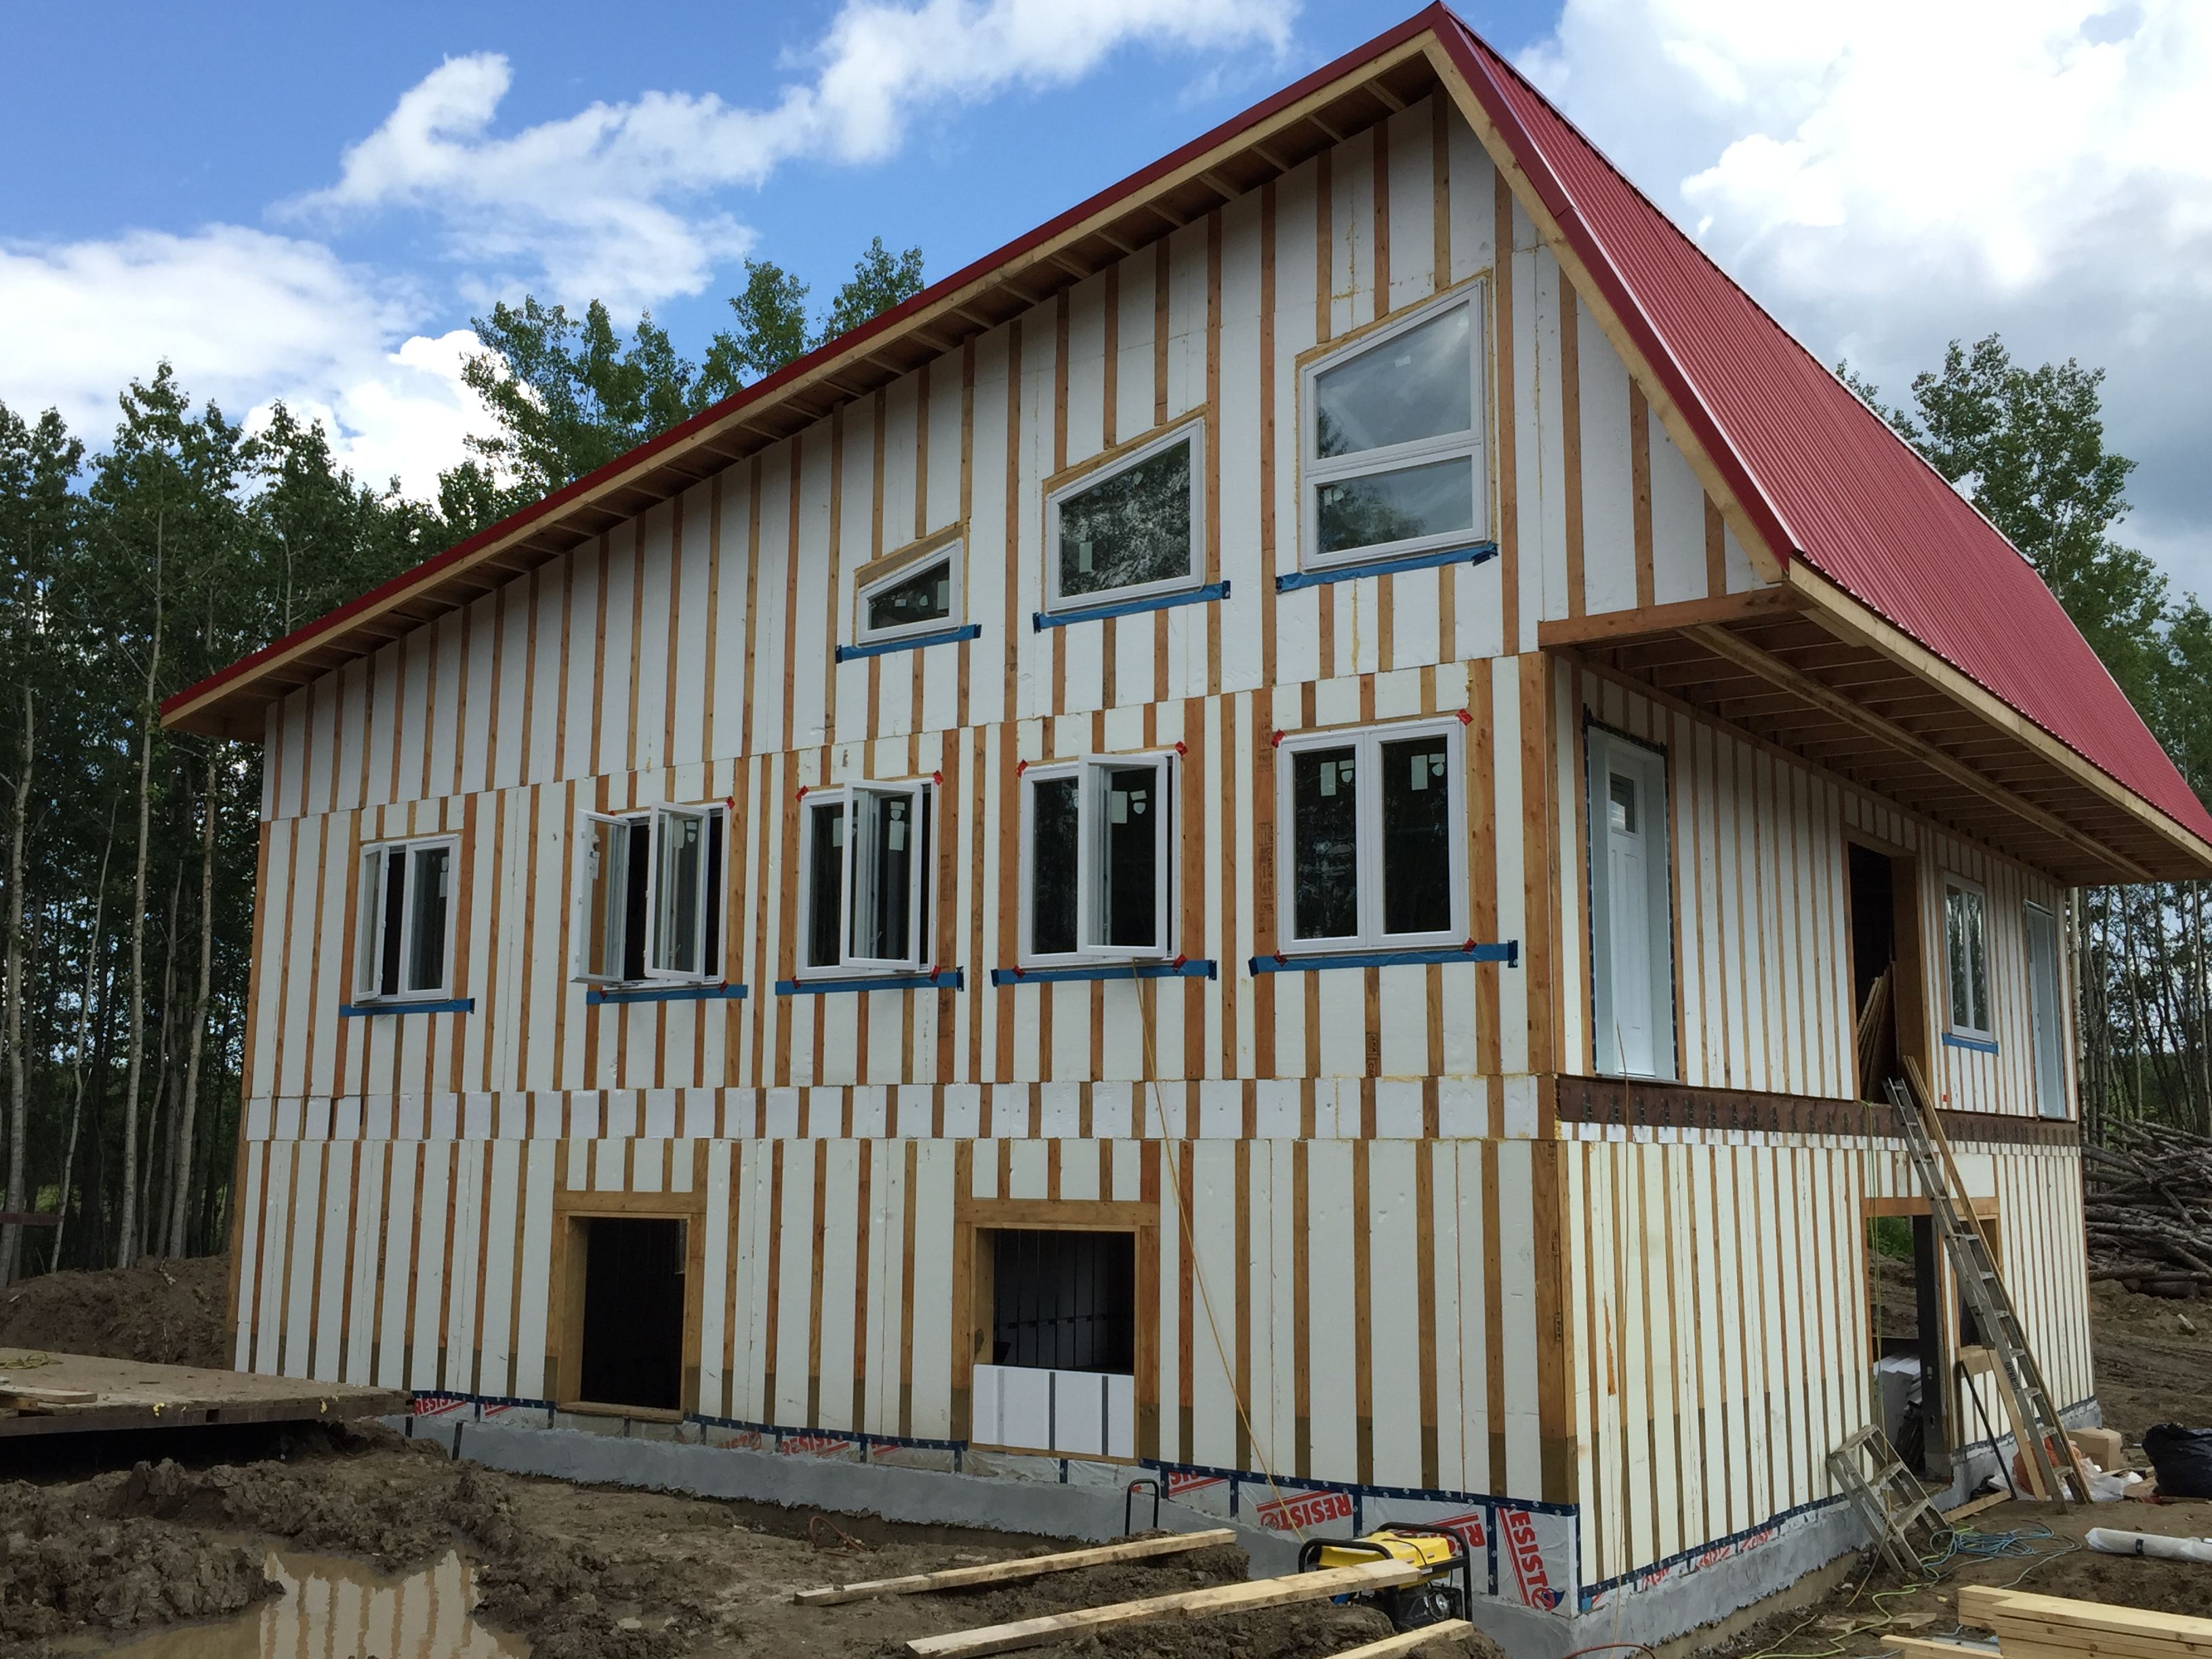 Full Summer home bungalow energy efficient building envelope pre strapped for planking siding